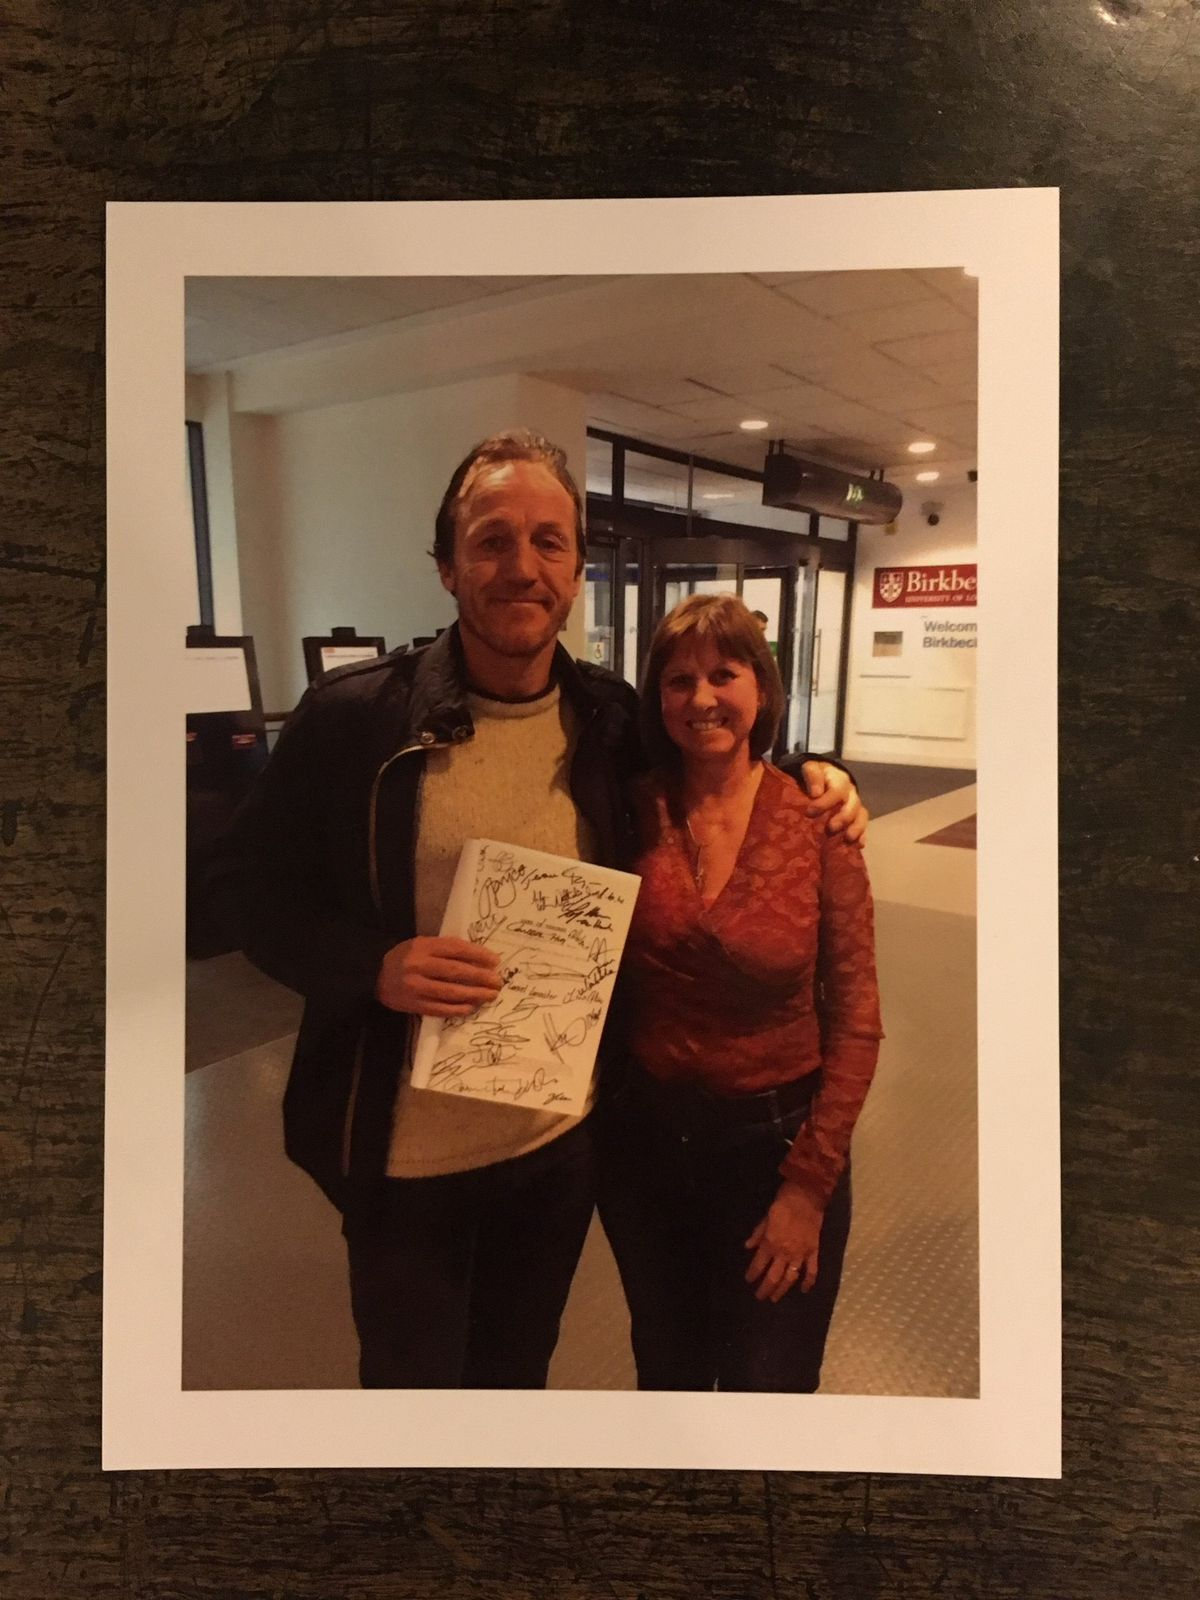 Jerome Flynn with Angela Raybould - credit Hansons